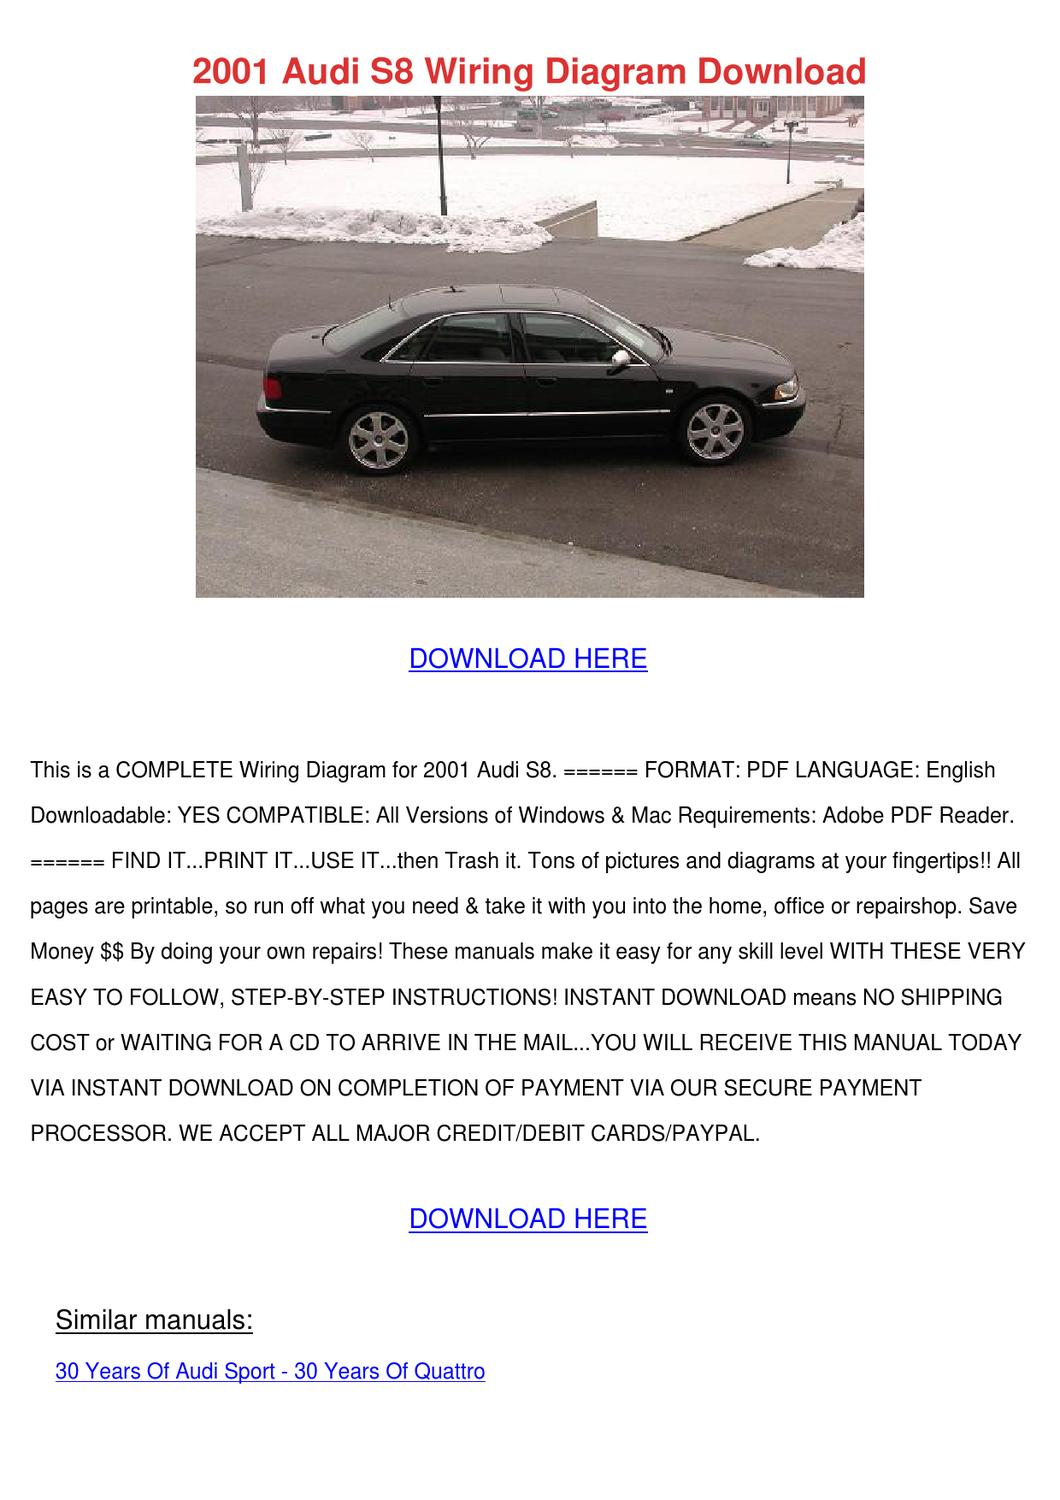 2001 Audi S8 Wiring Diagram Download by MarceloMast - issuu